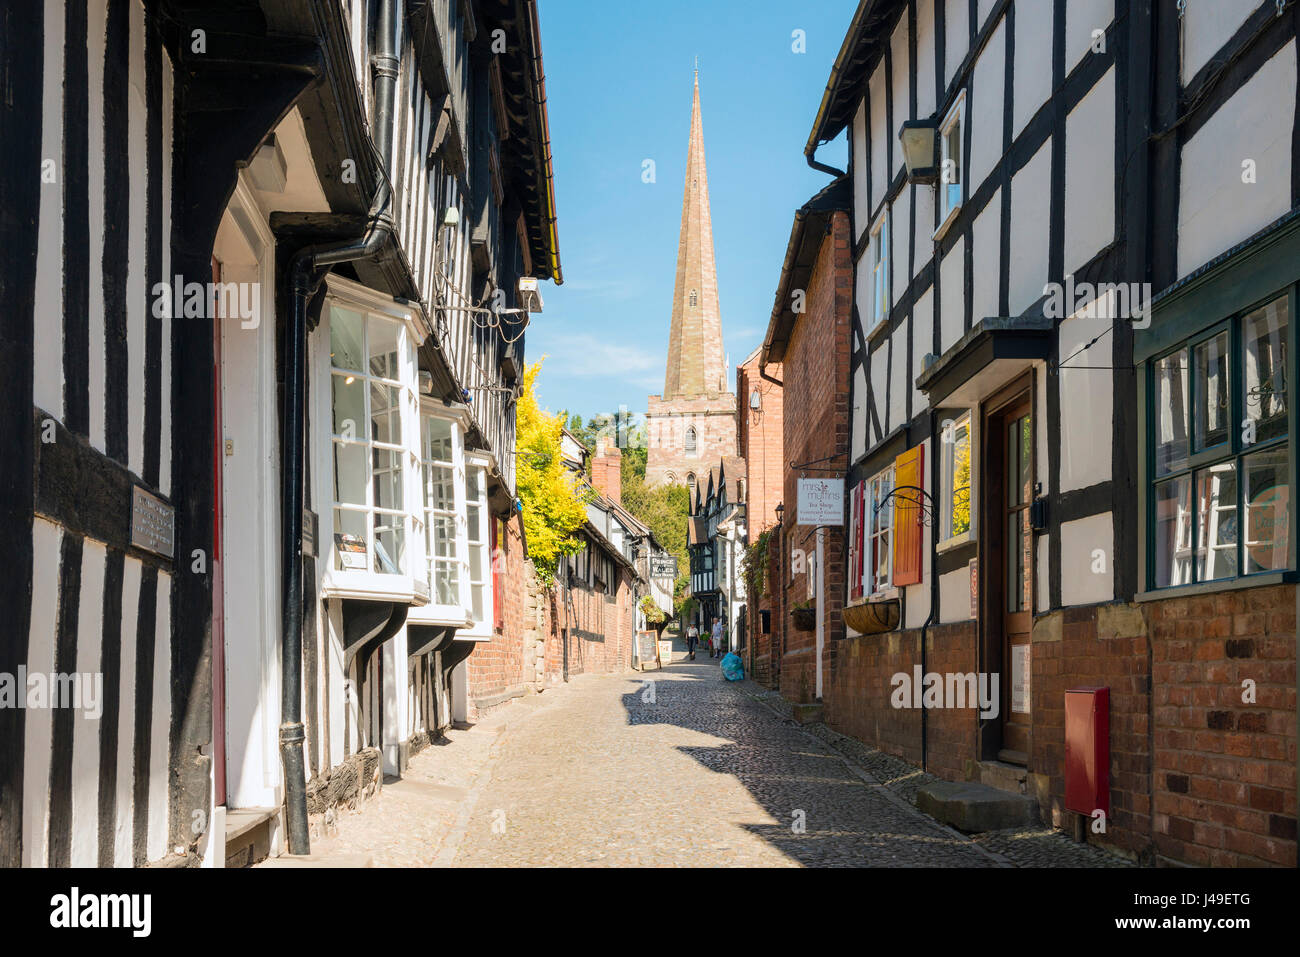 Ledbury Herefordshire, UK - Church Lane. - Stock Image